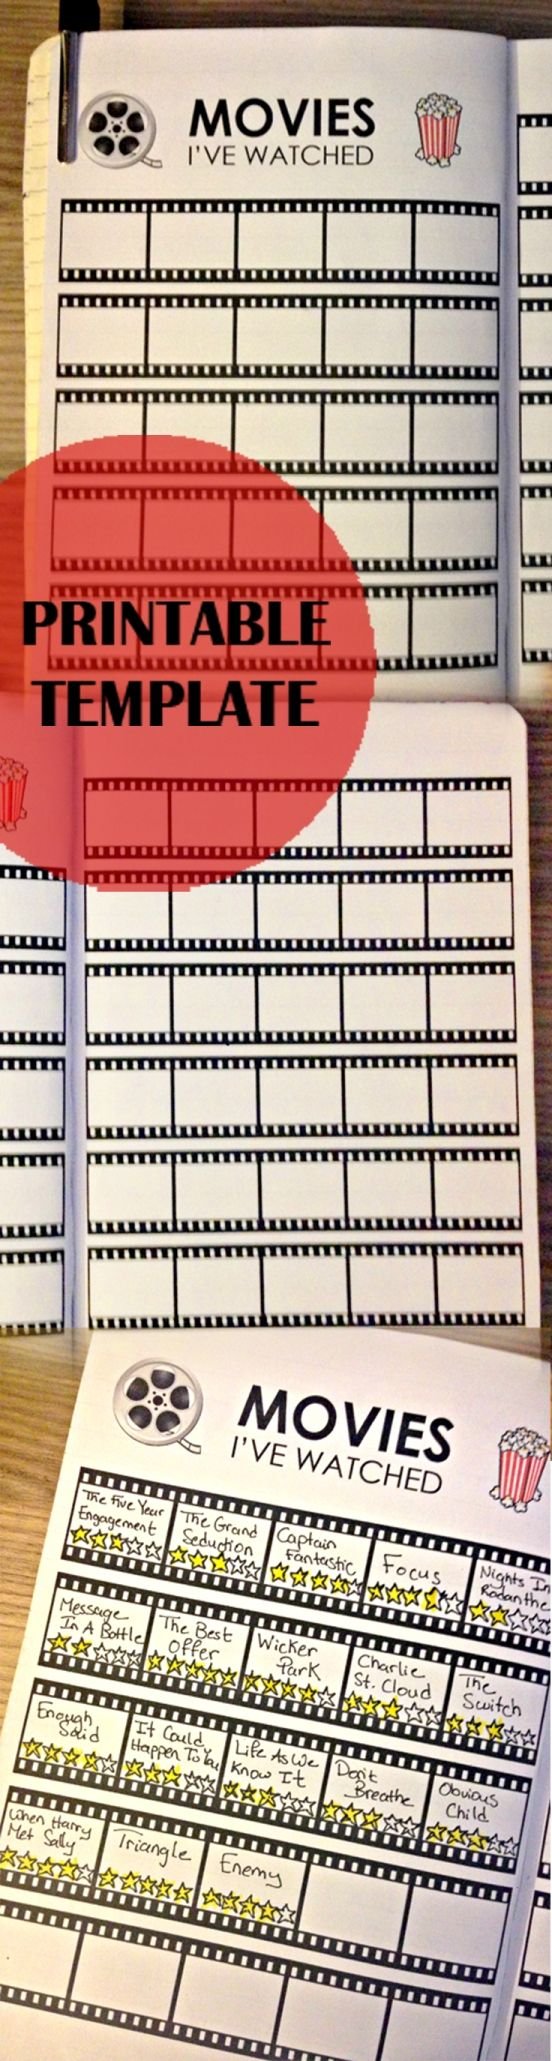 Tracking Films You've Watched in Your Bullet Journal – Roline Haine